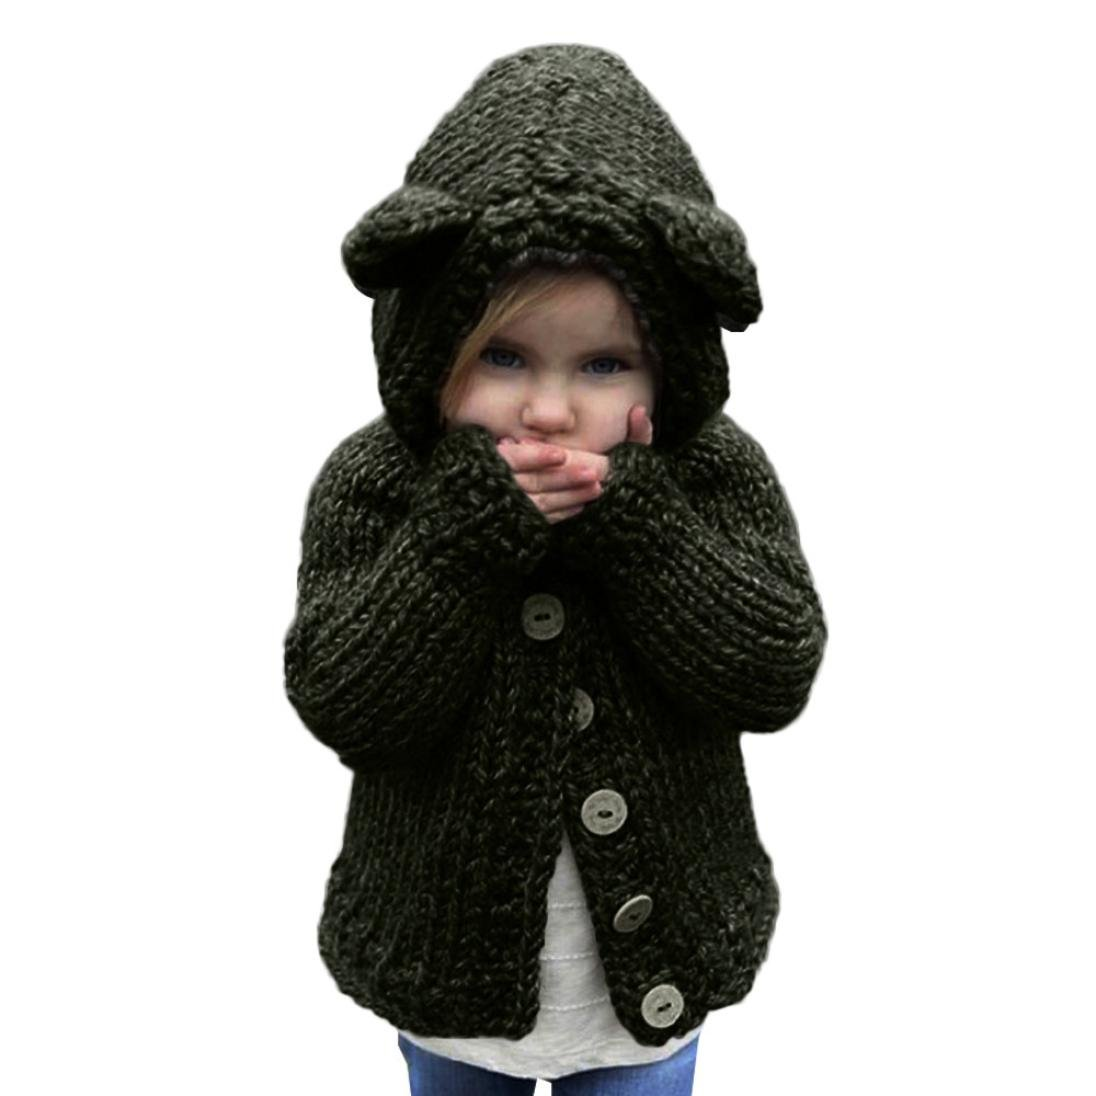 Toddler Little Girls Sweater Hooded Knit Pullovers Cardigan Warm Coat Clothes (2Years, Army Green)